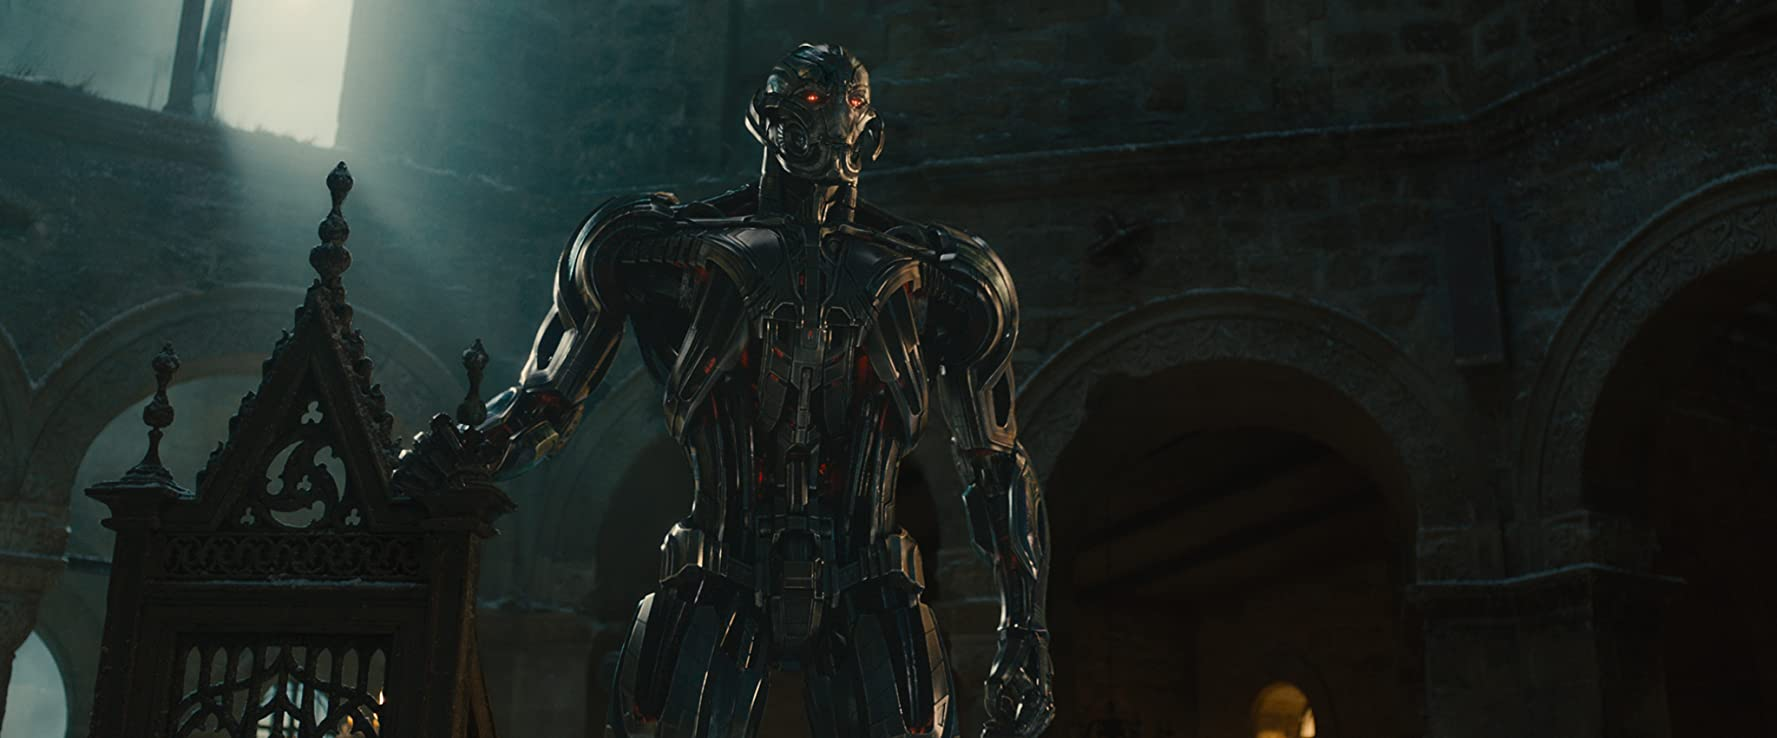 James Spader in Avengers: Age of Ultron (2015)